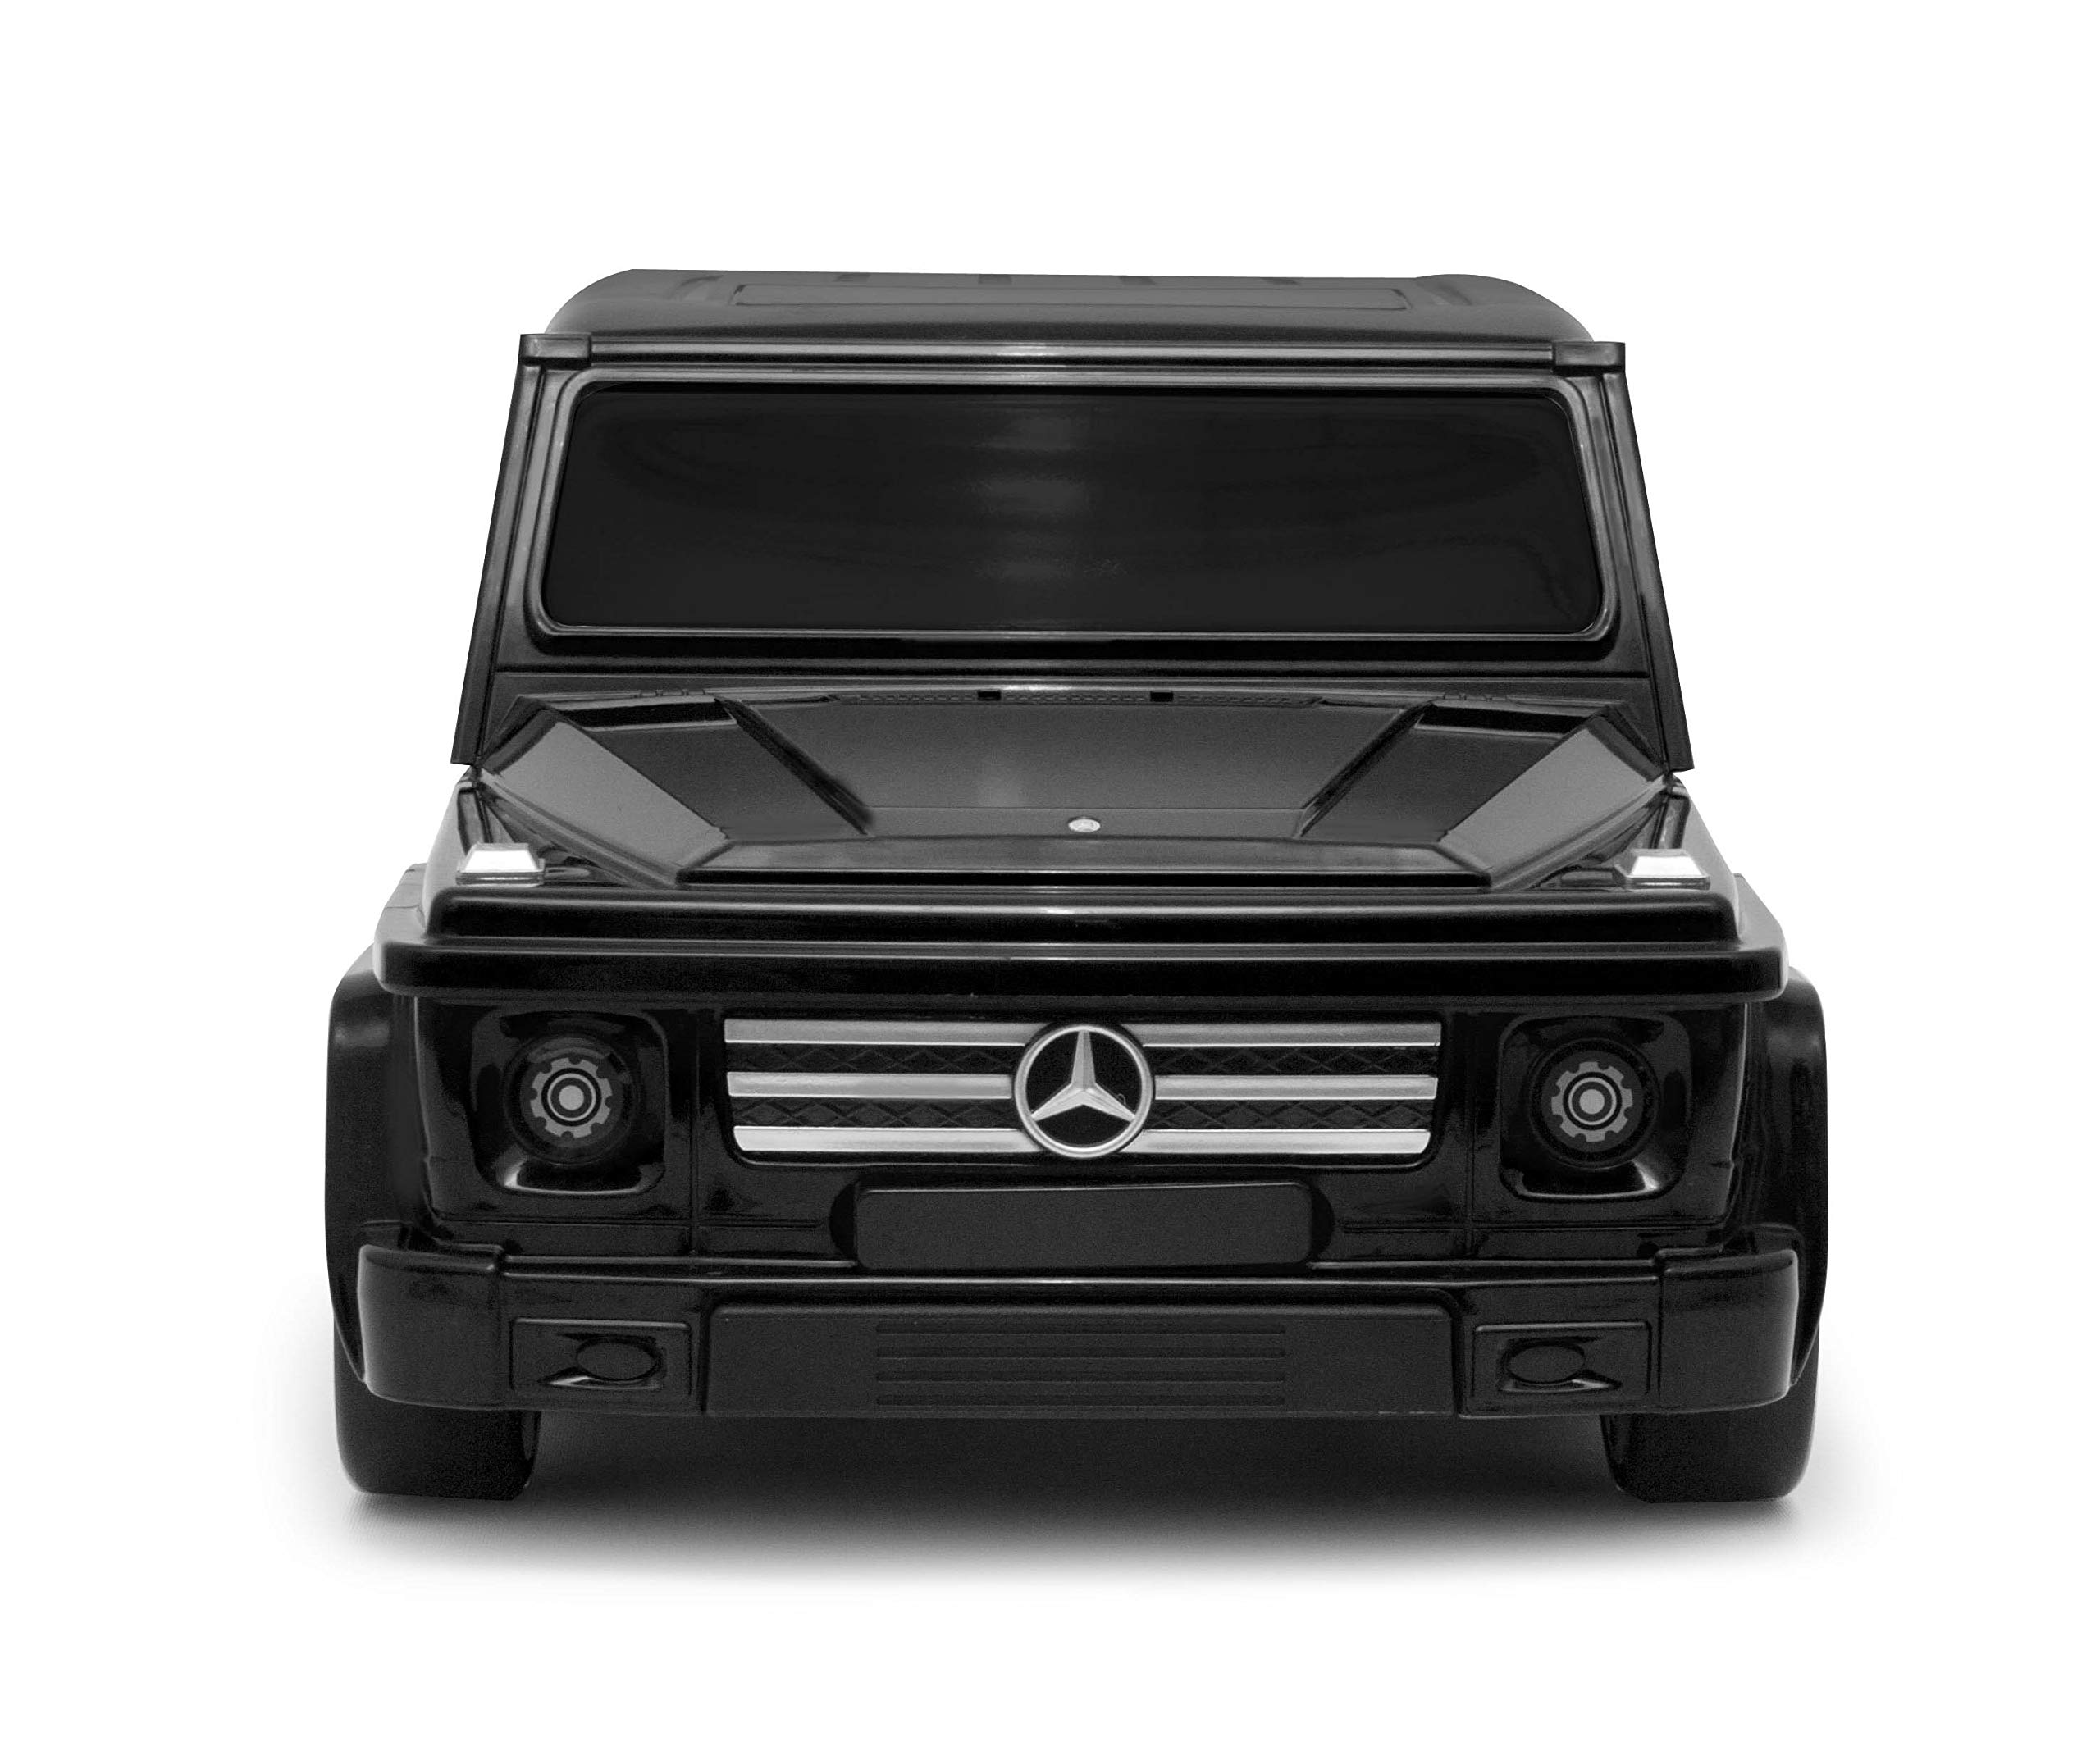 Ridaz Mercedes Carry-on Hand Luggage for kids, Black Mercedes